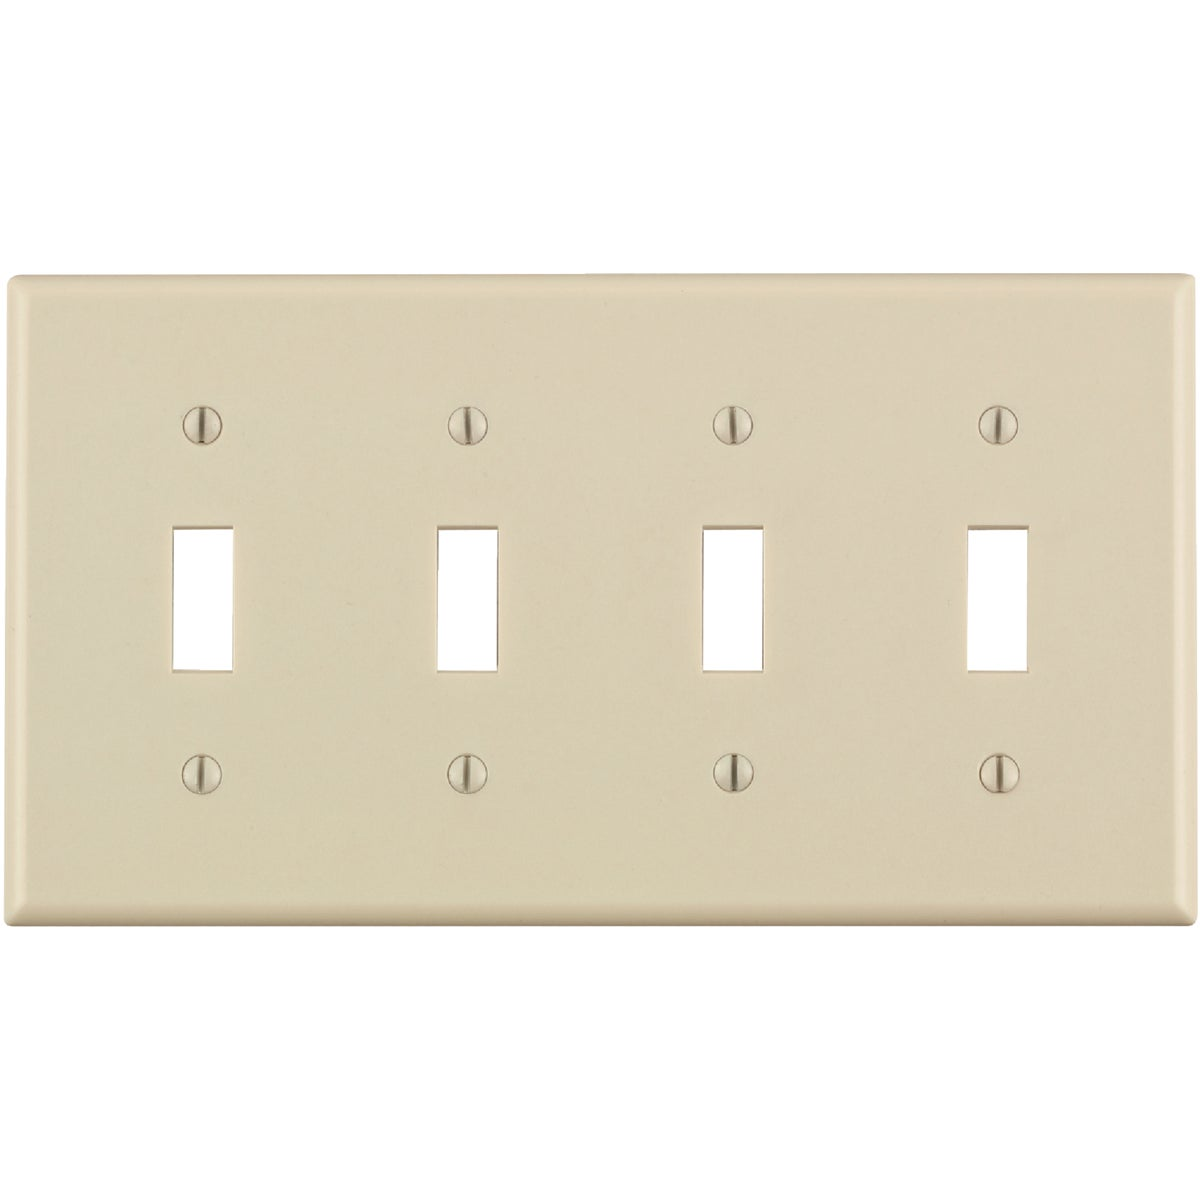 LT ALM 4-TGL WALLPLATE - 000-78012 by Leviton Mfg Co